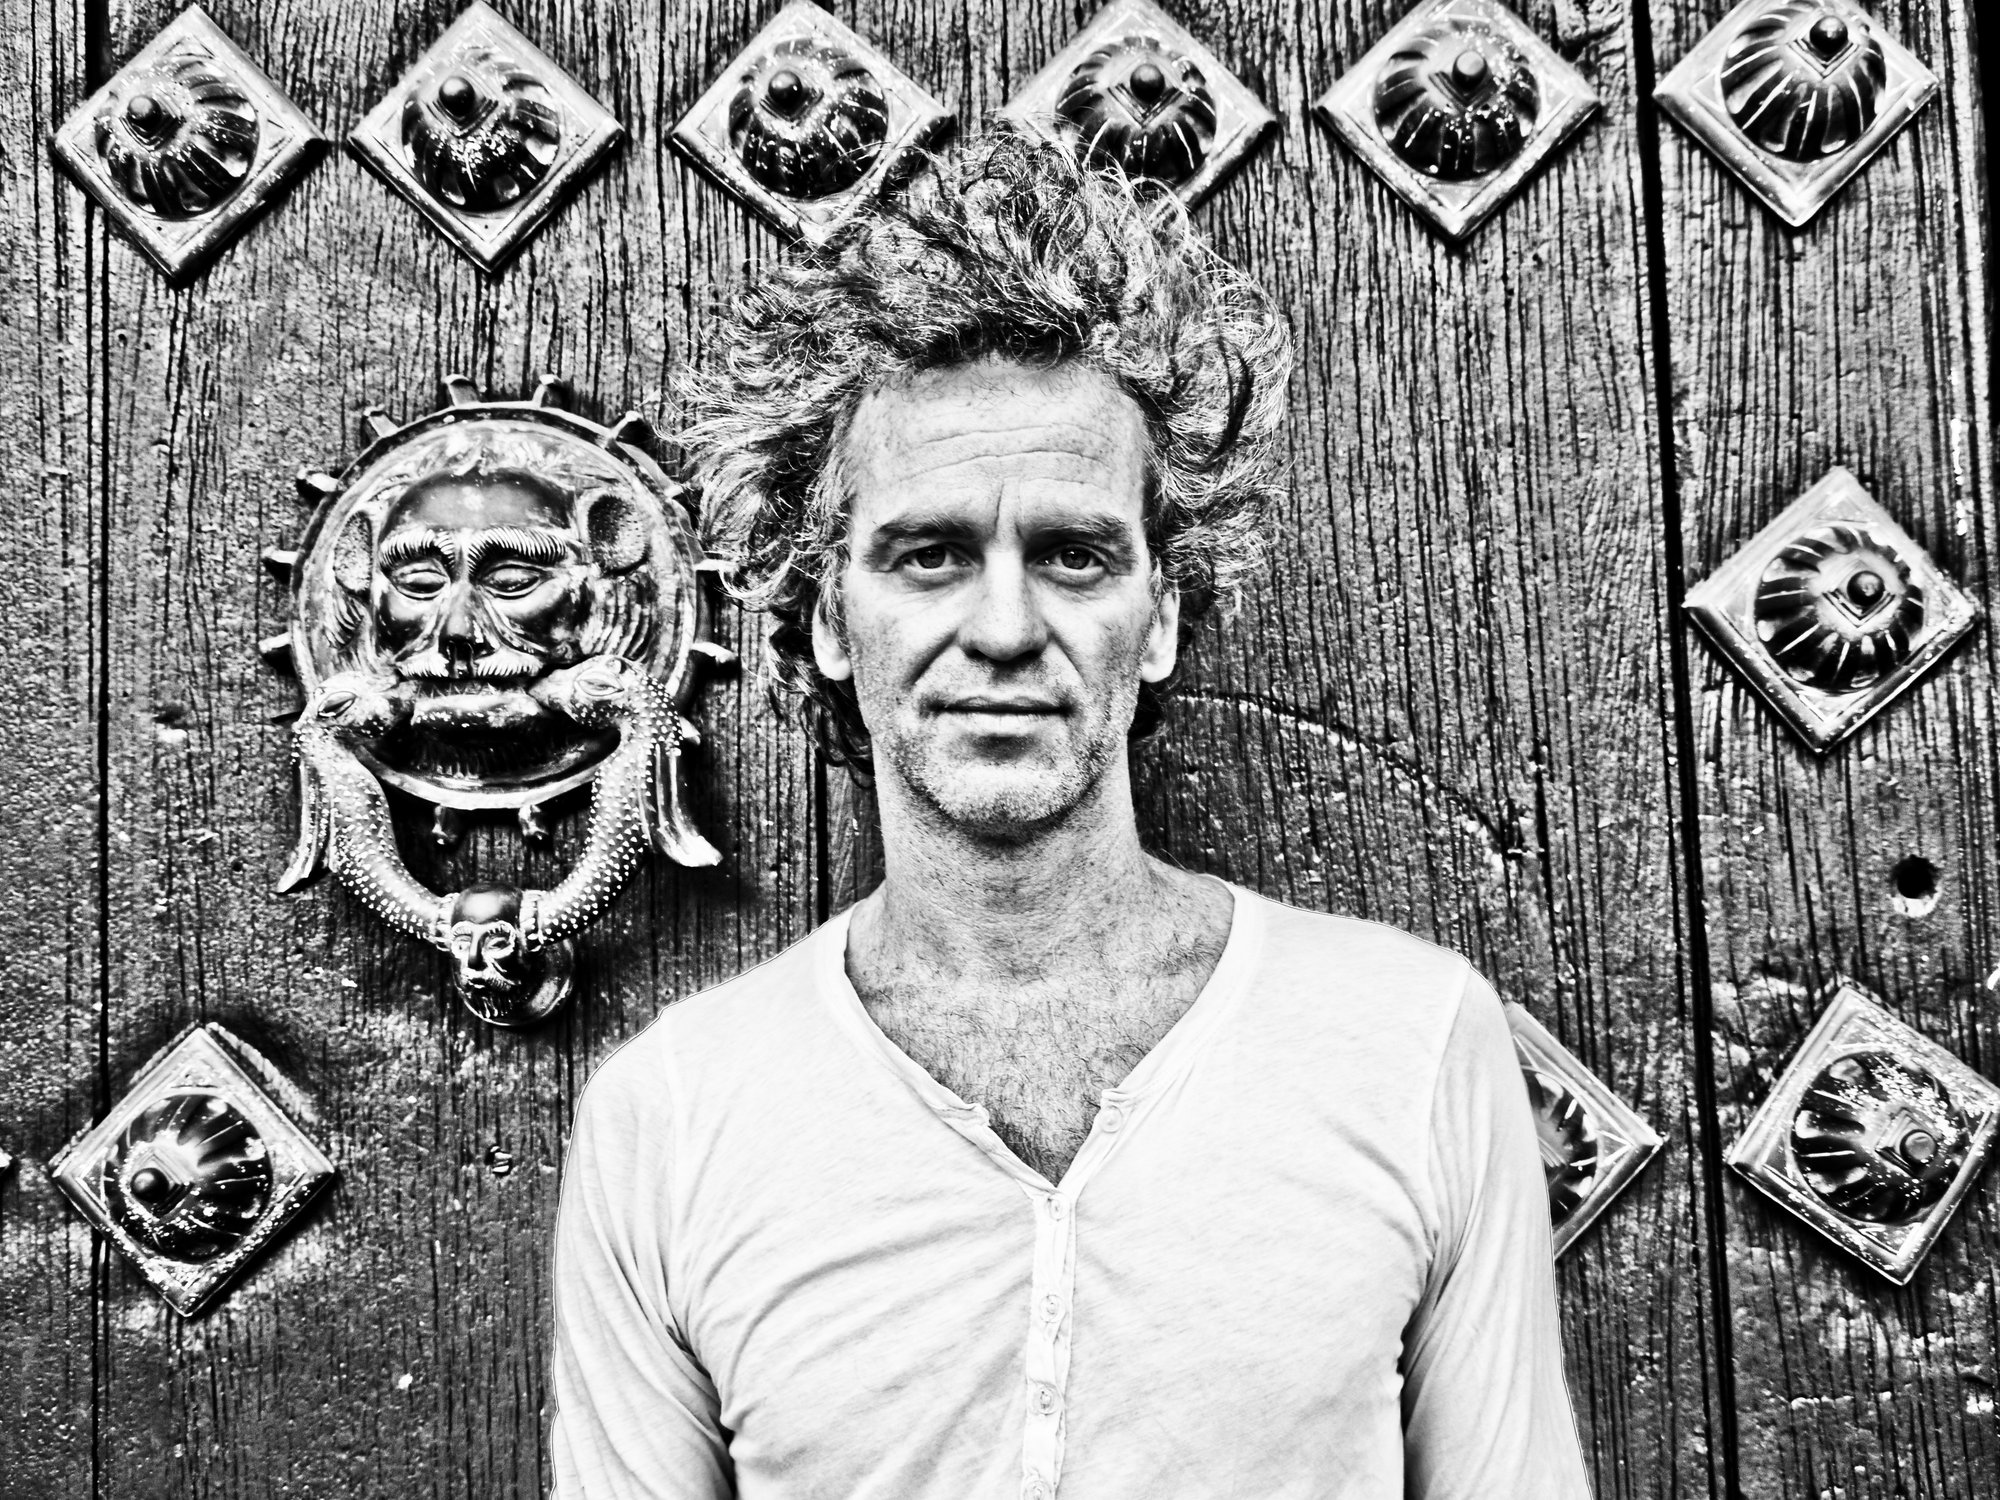 a black and white image of a wild haired man with a v-necked white shirt face the viewer on a backgrop of an ornate carved door